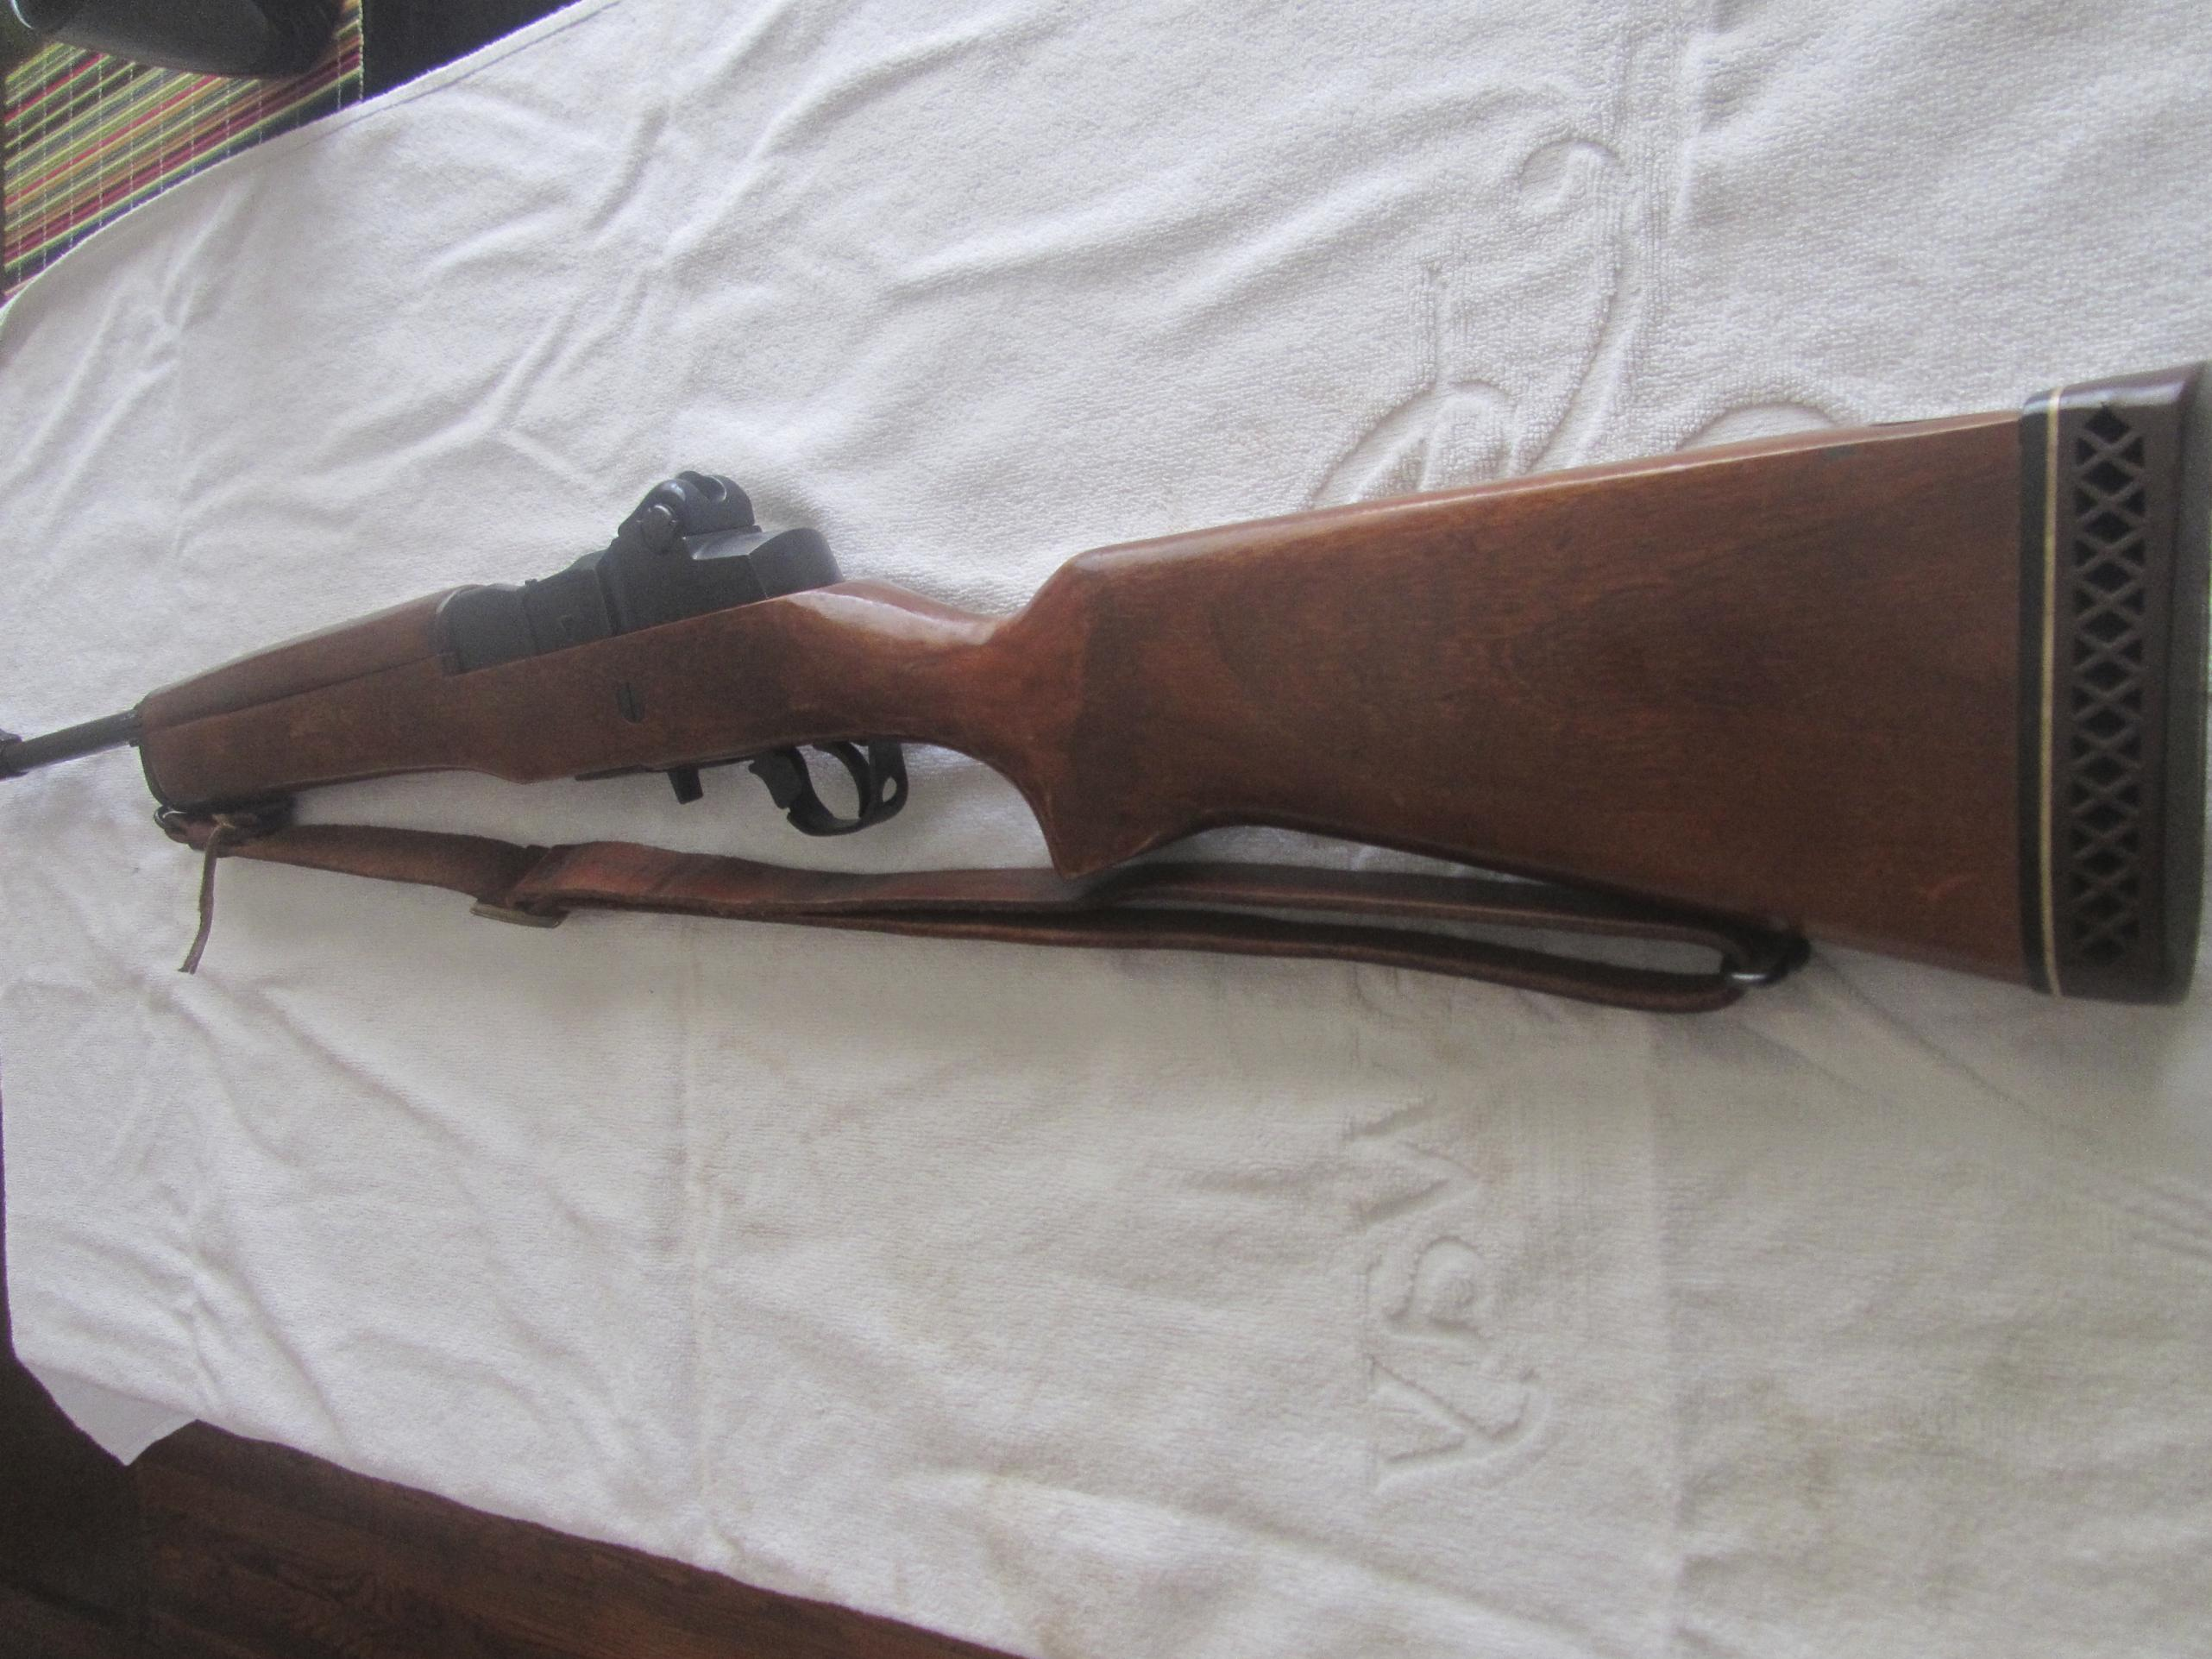 MINI 14 - I DIDN'T THINK IT LOOKED TO BAD FOR A 35 YEAR OLD FIREARM (Pic Heavy)-img_2416.jpg